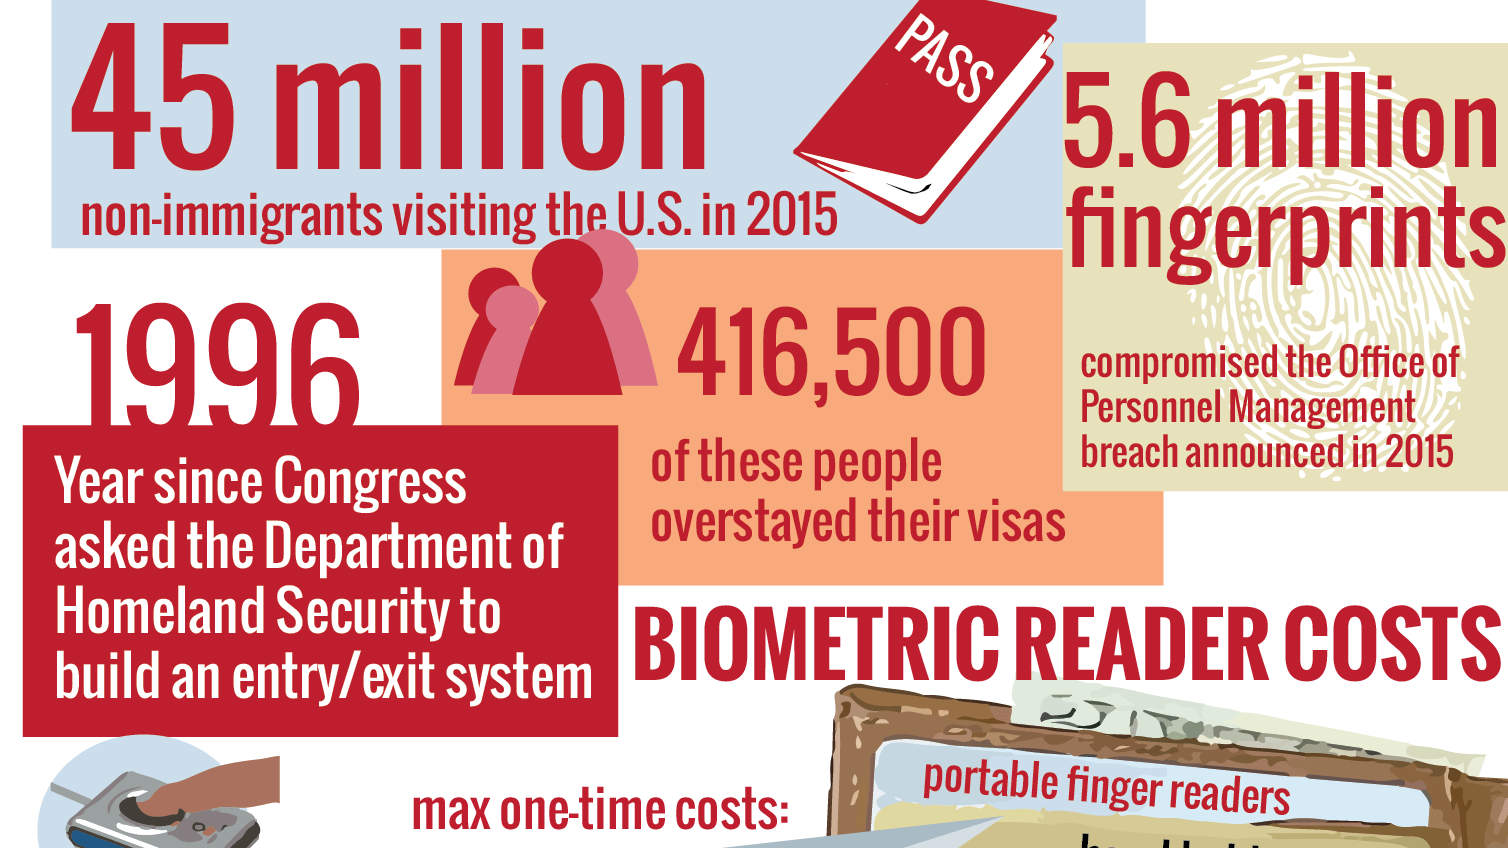 Will biometric tracking systems at U.S. exits improve border security?